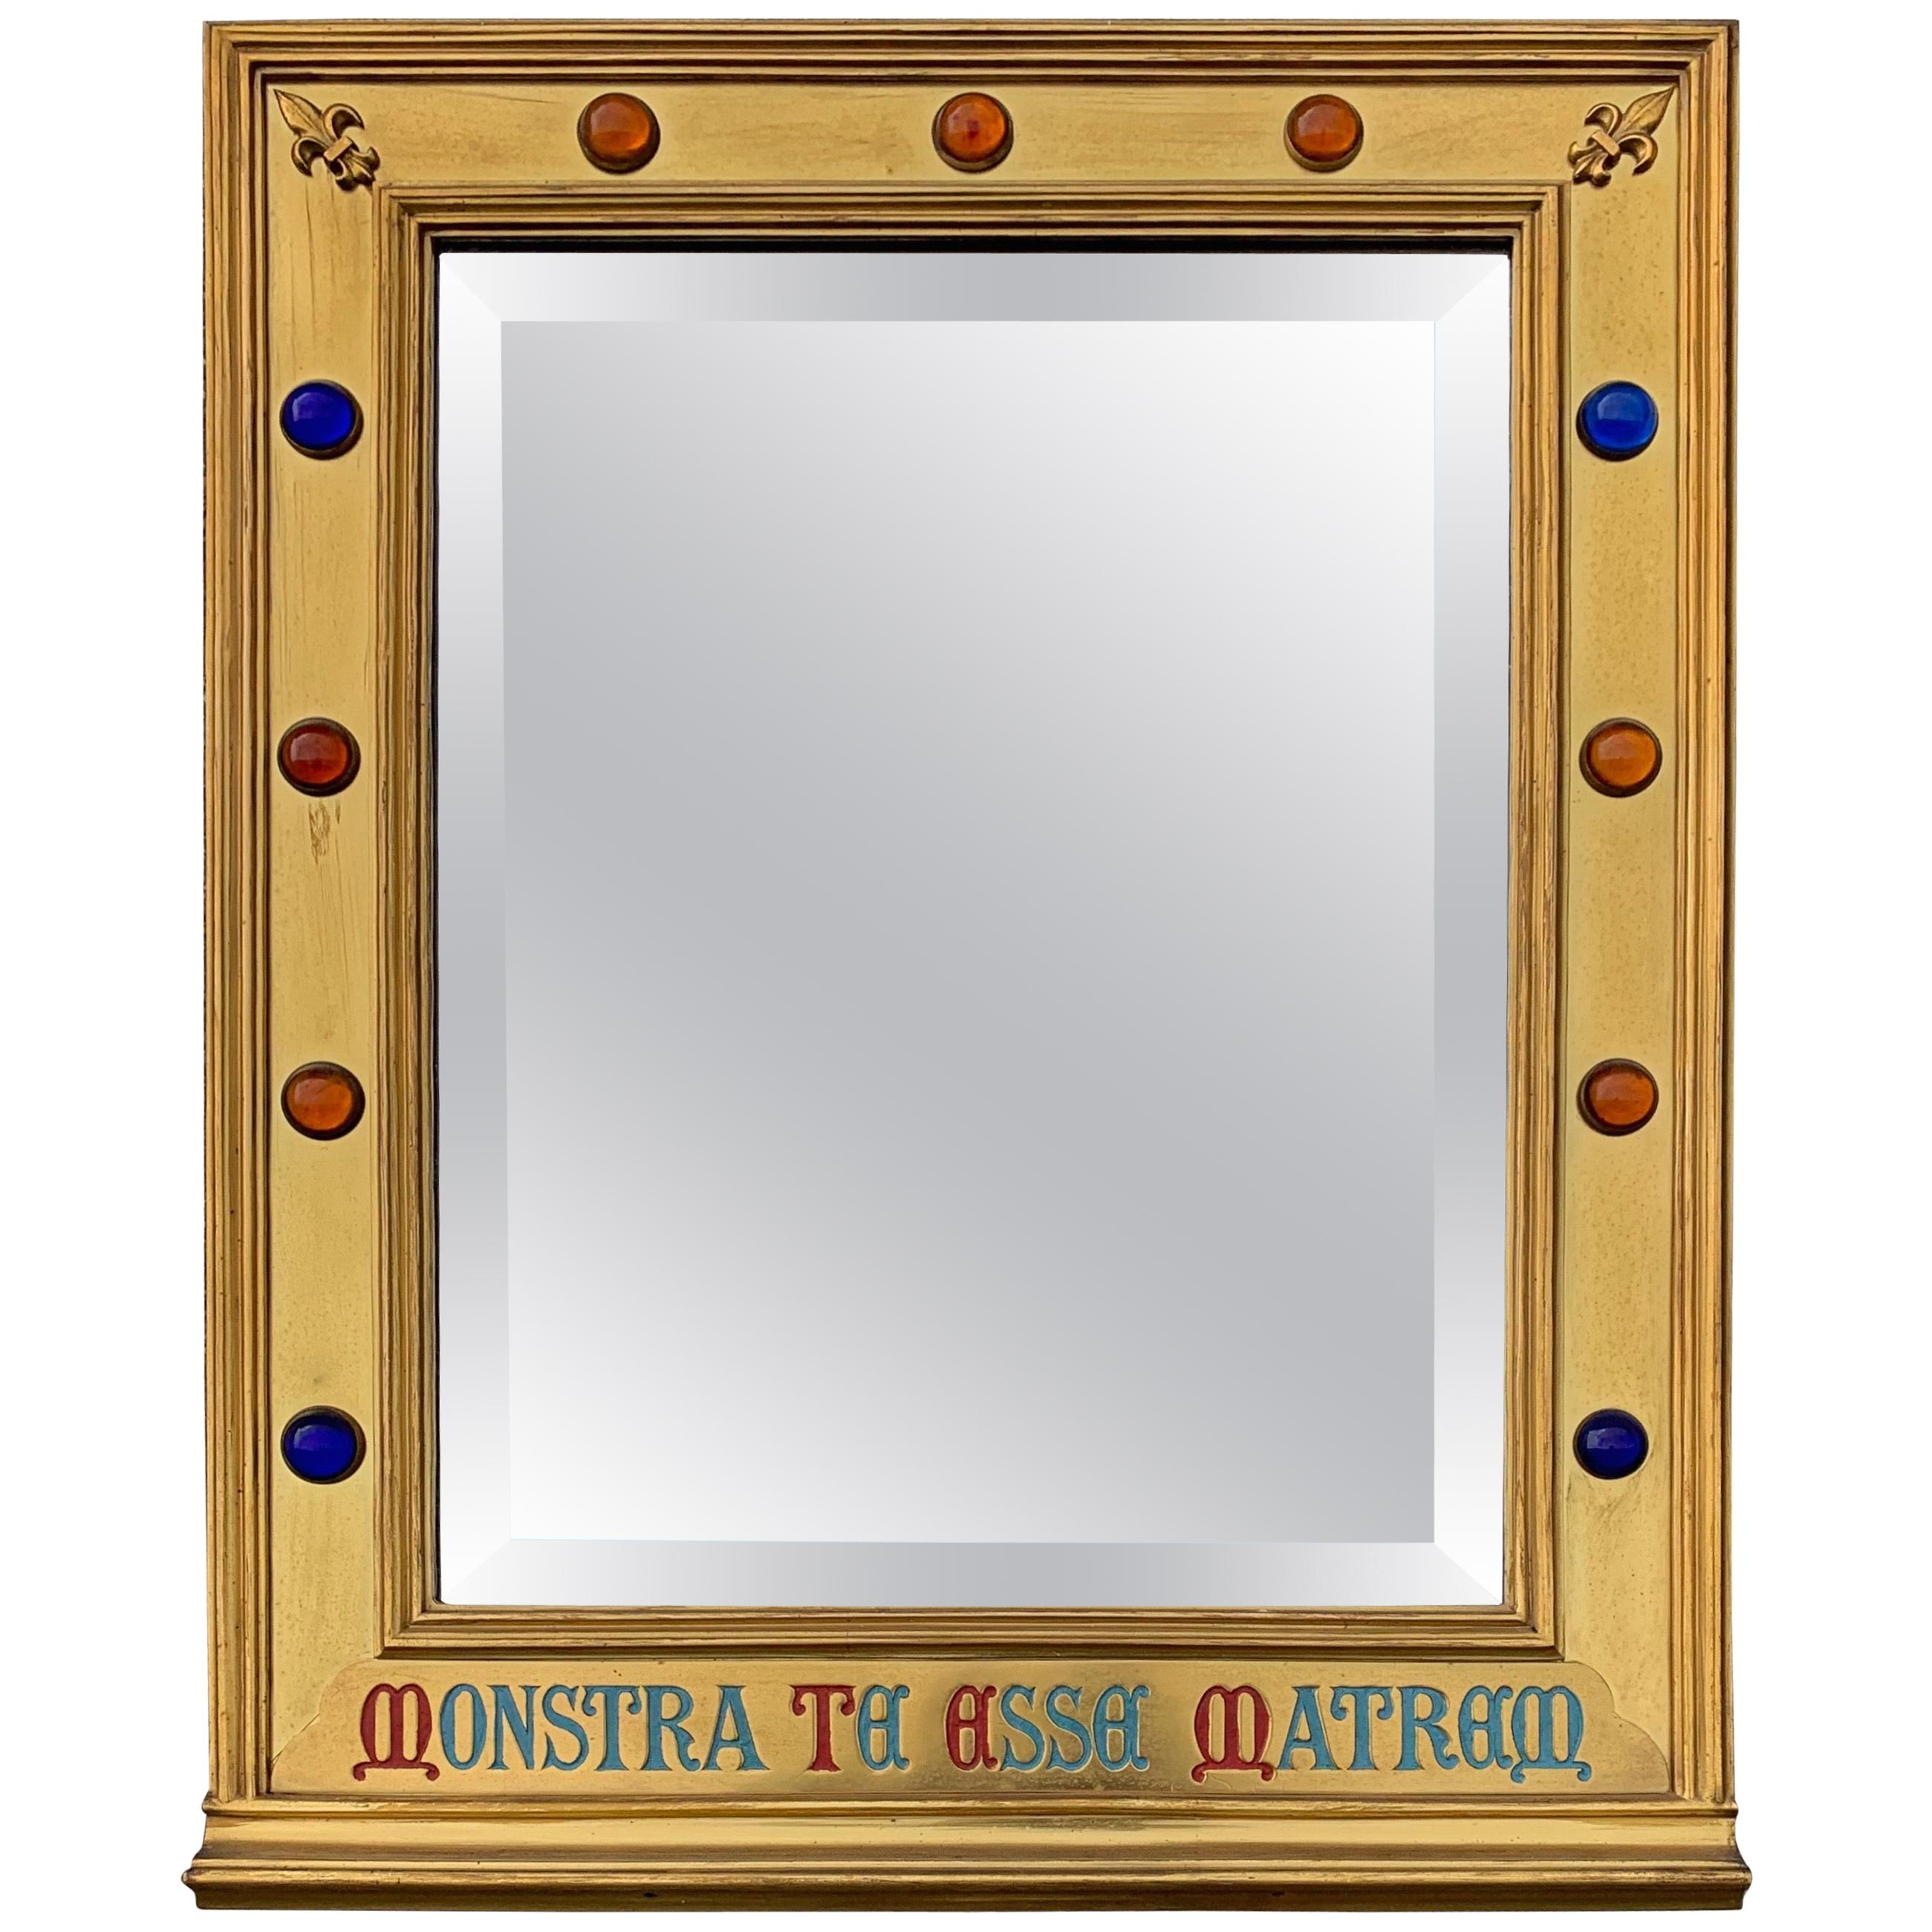 Gothic Revival Gilt Brass on Wood Wall Mirror with Glass Stones and Latin Phrase